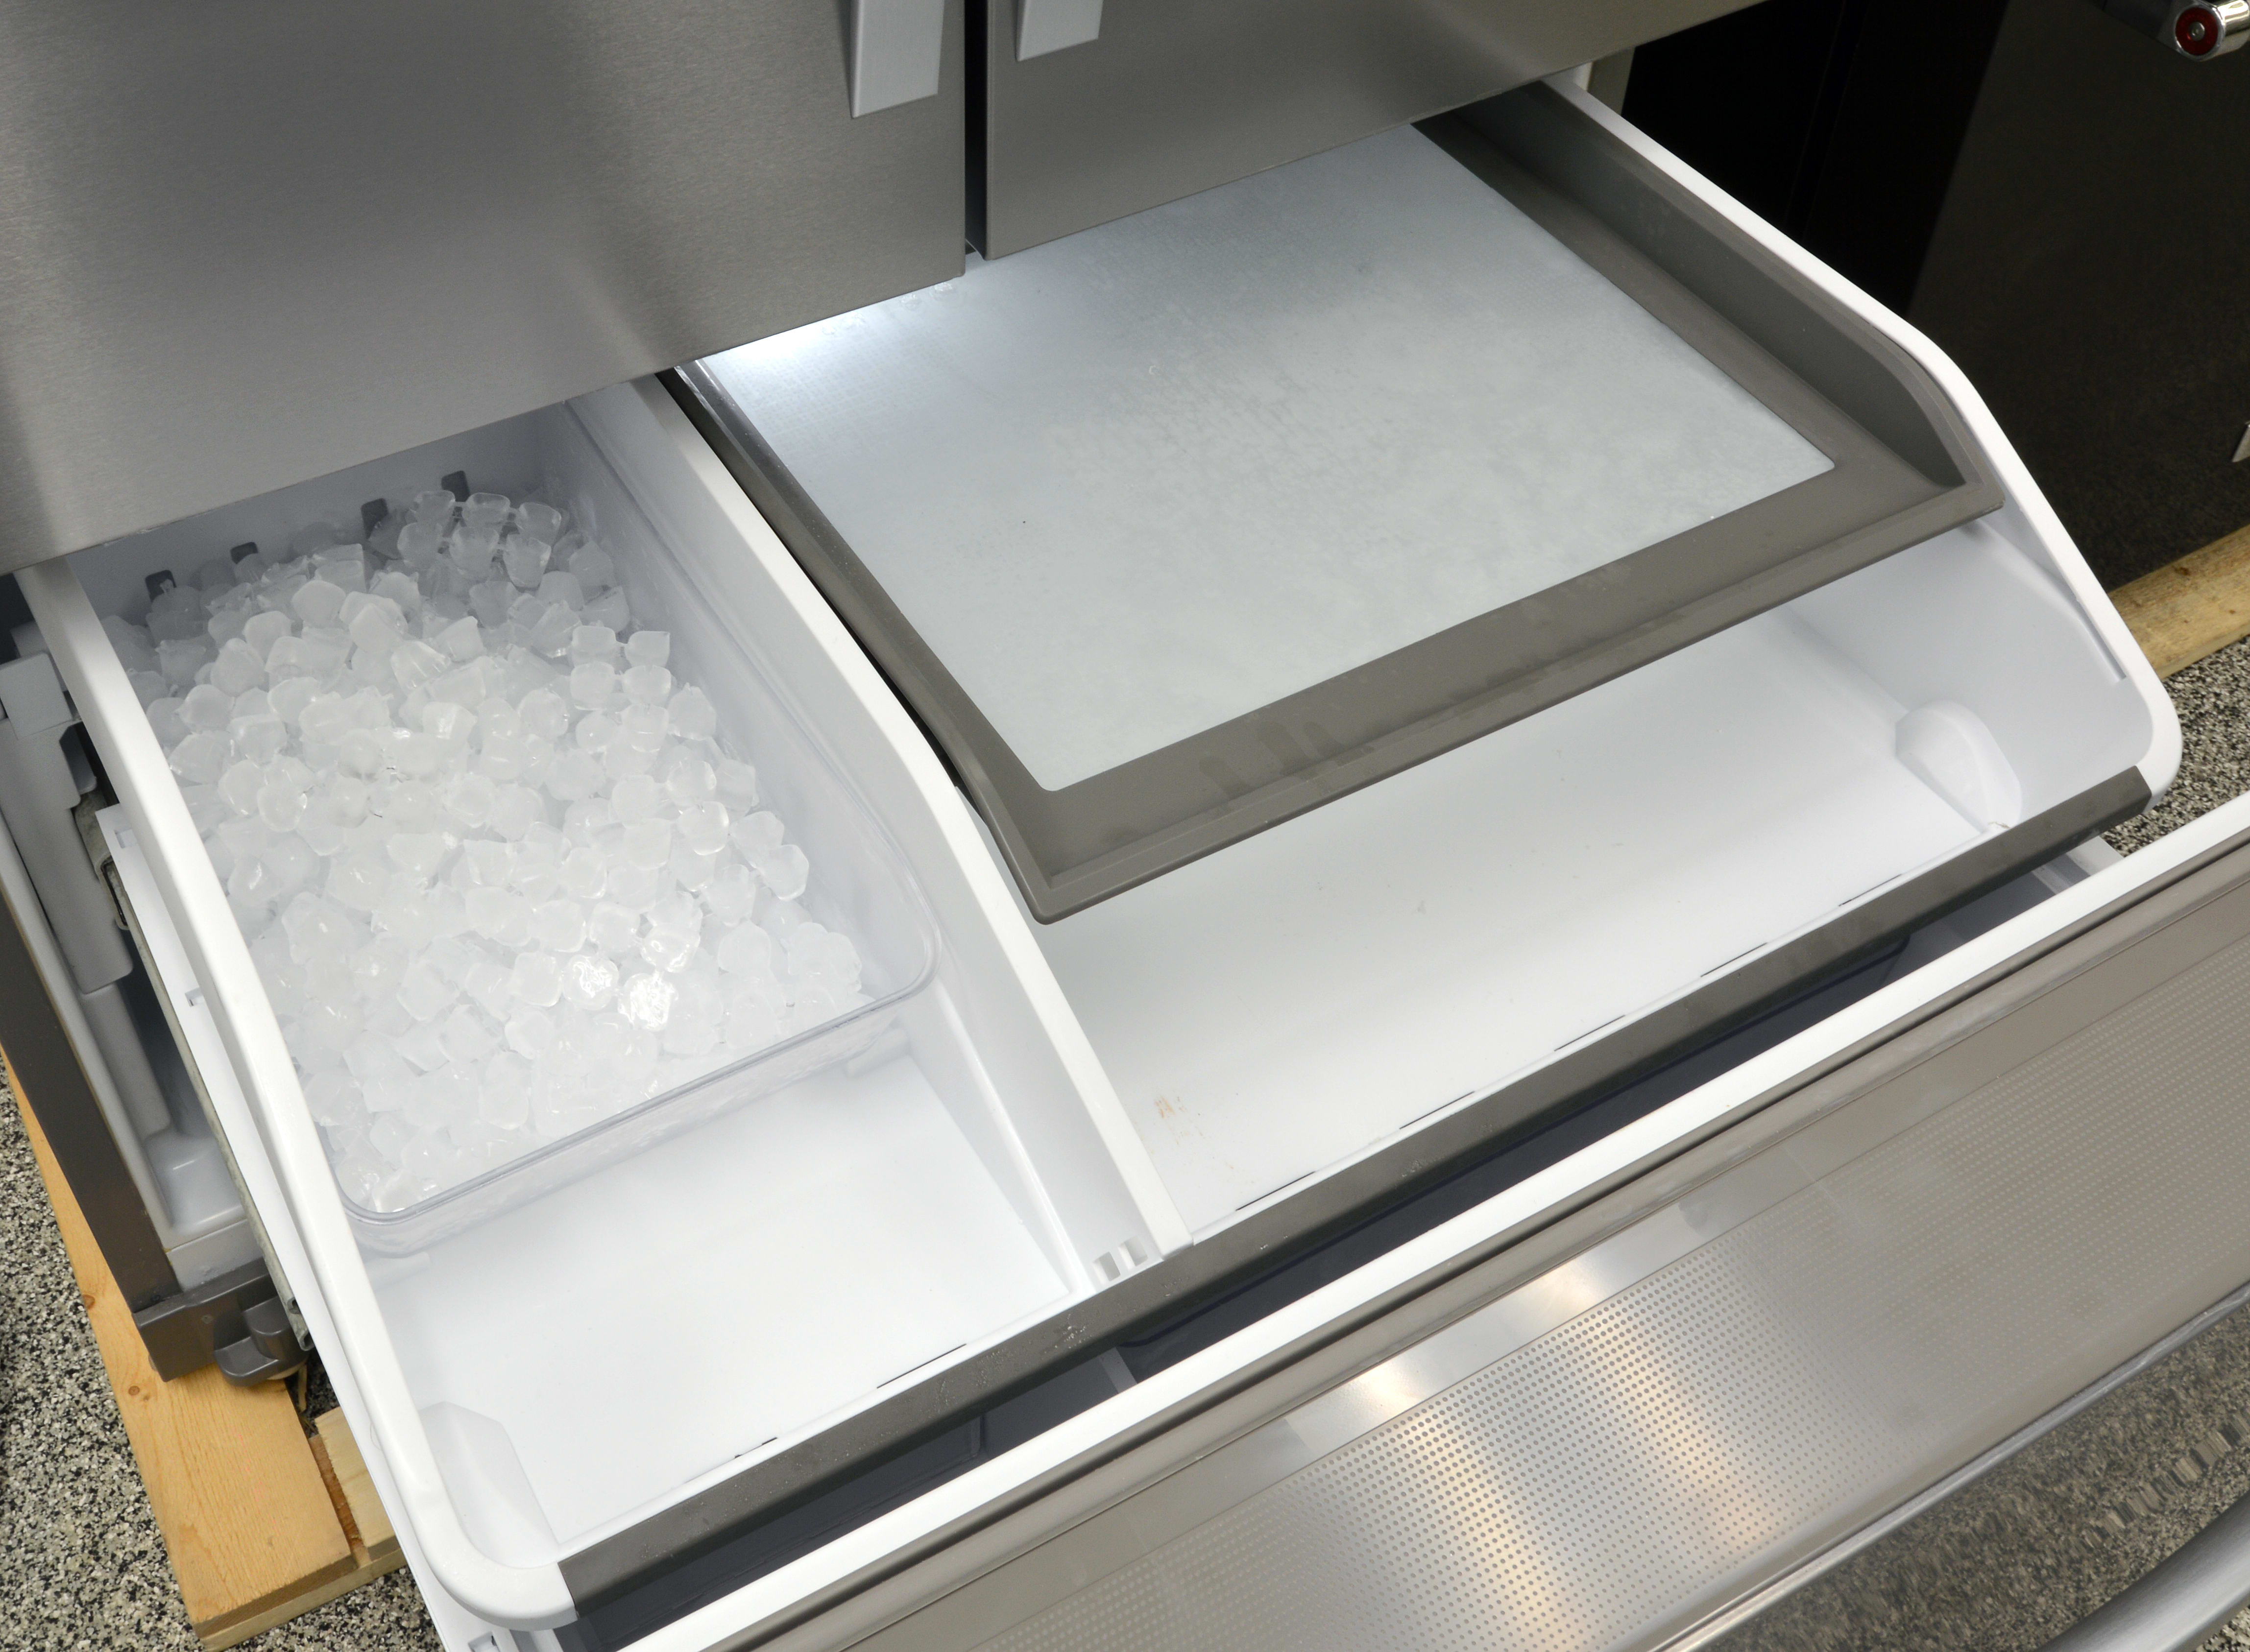 On the upper freezer drawer, you get the cube bucket for the second ice maker, plus a two-tiered storage area that offers less space than a usual freezer drawer but helps keep things organized.